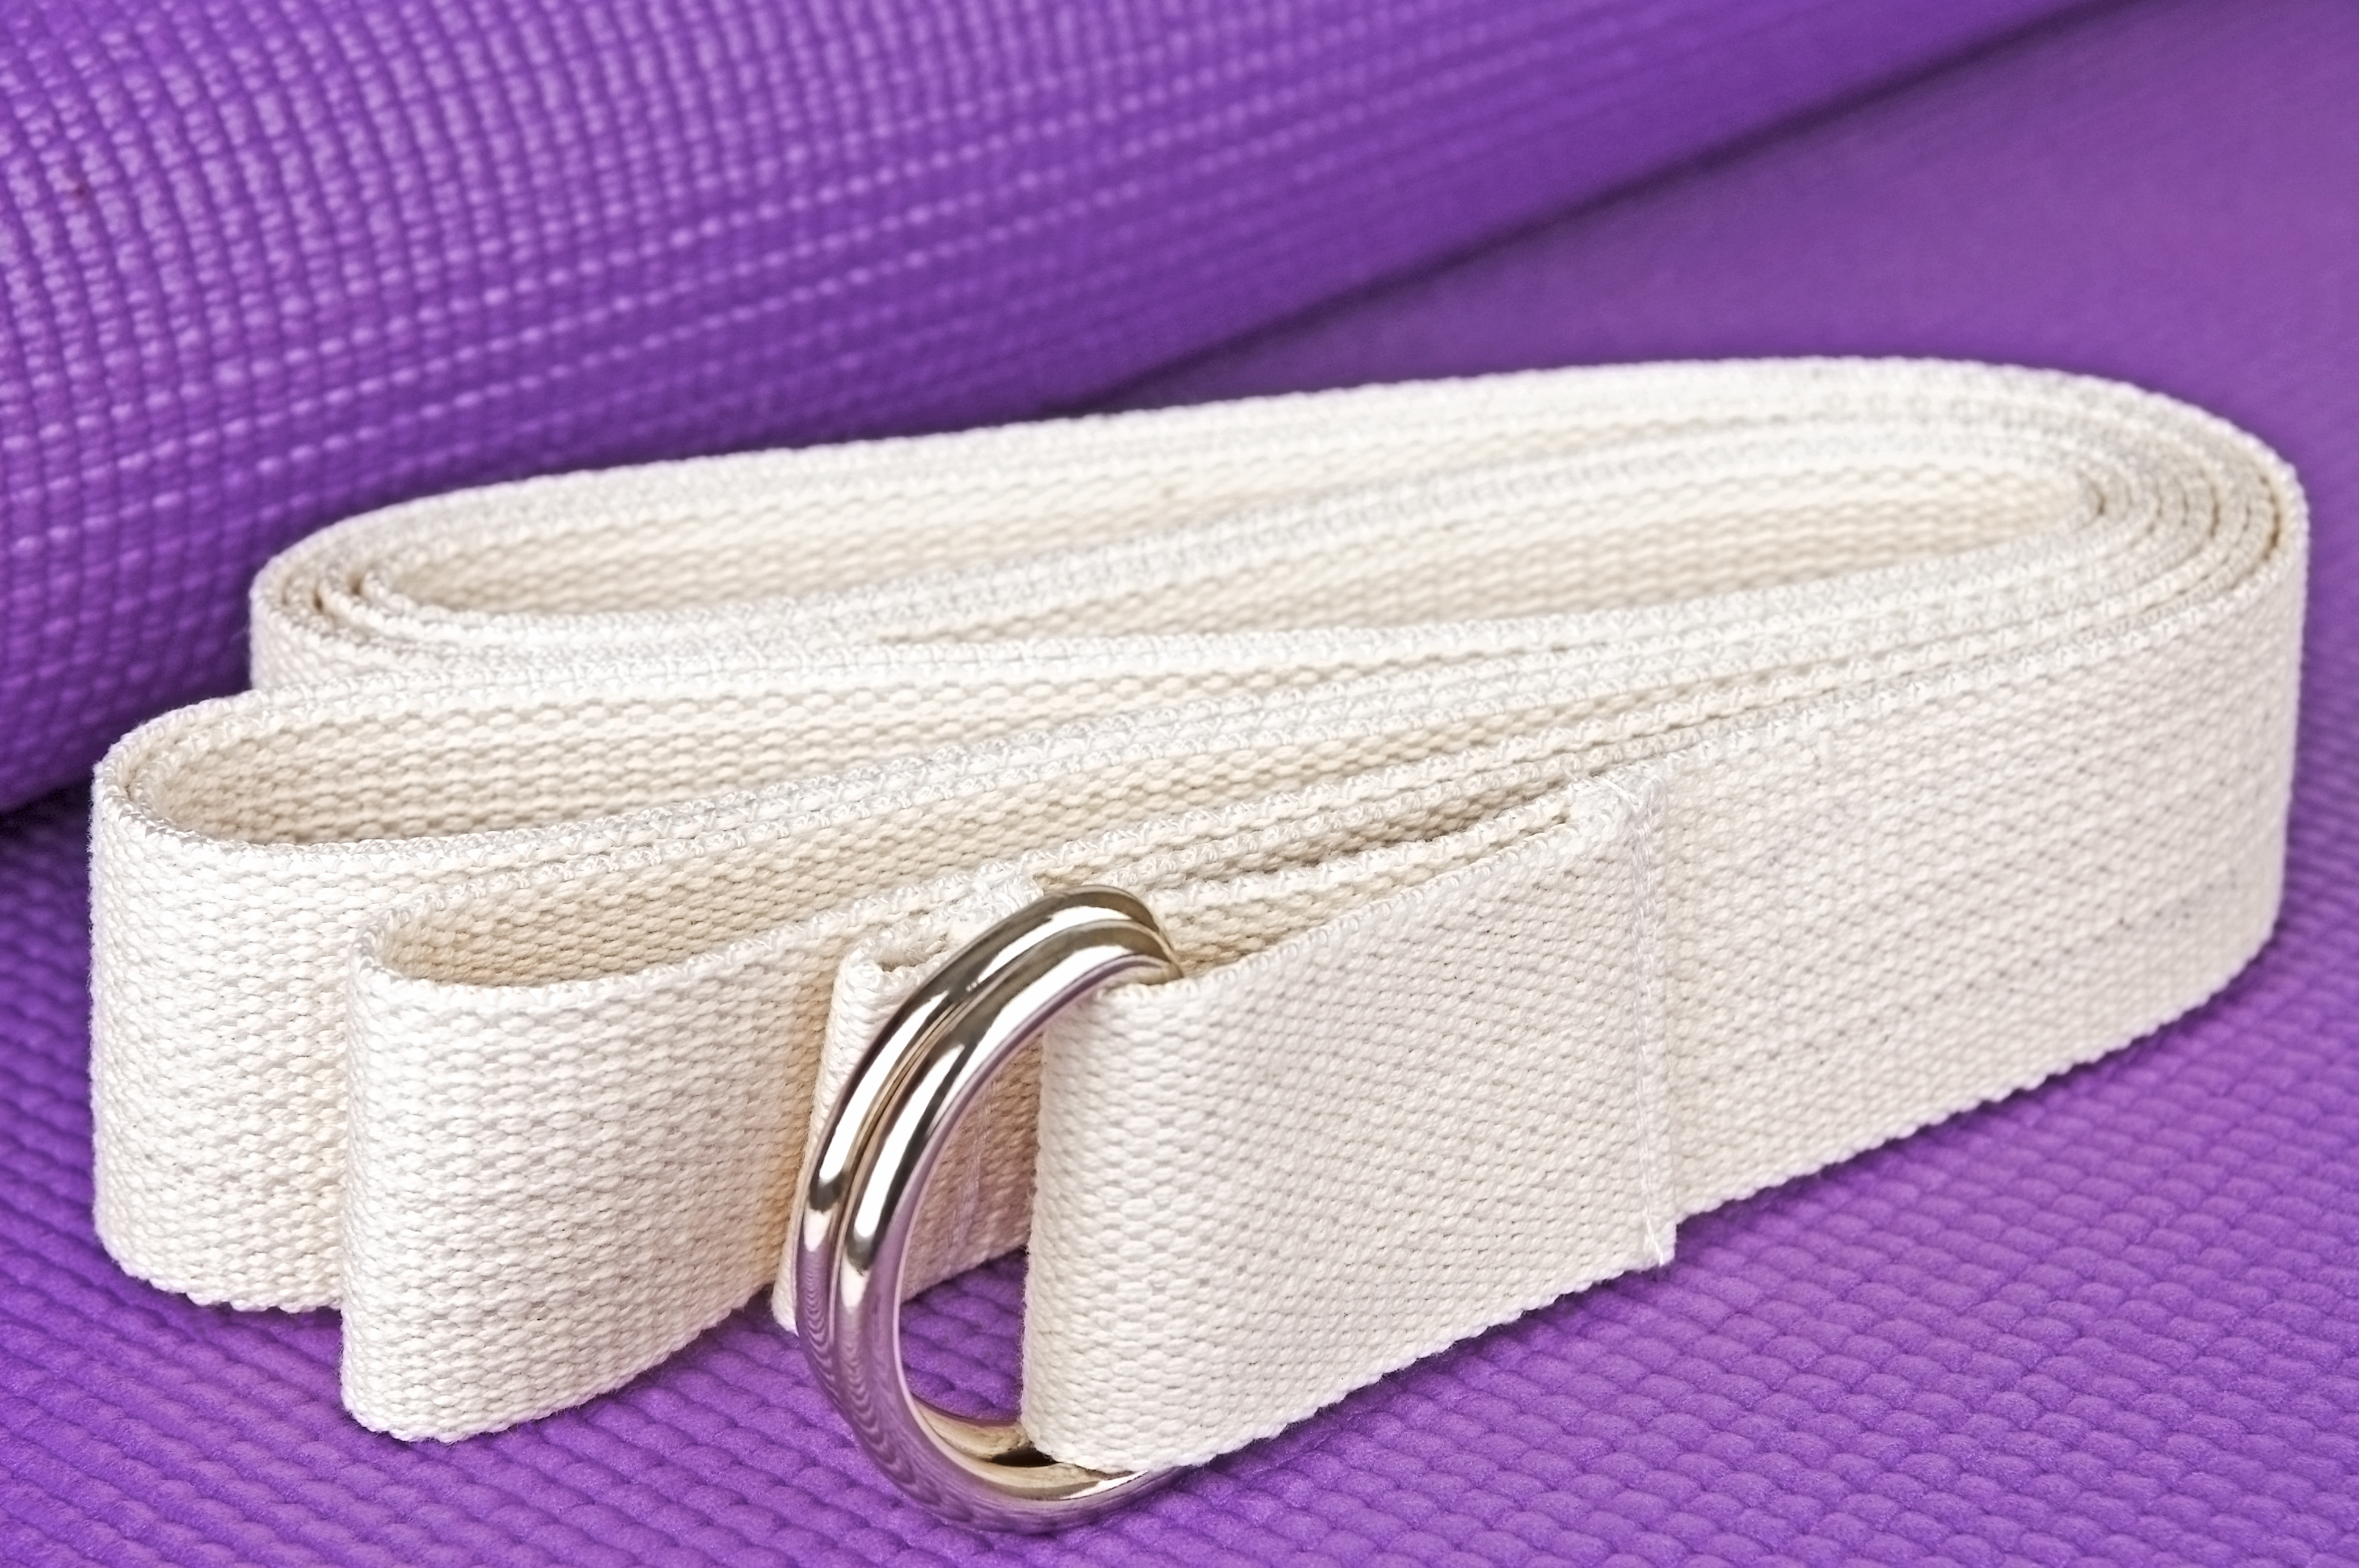 How To Use A Yoga Strap To Carry Your Mat Lovetoknow